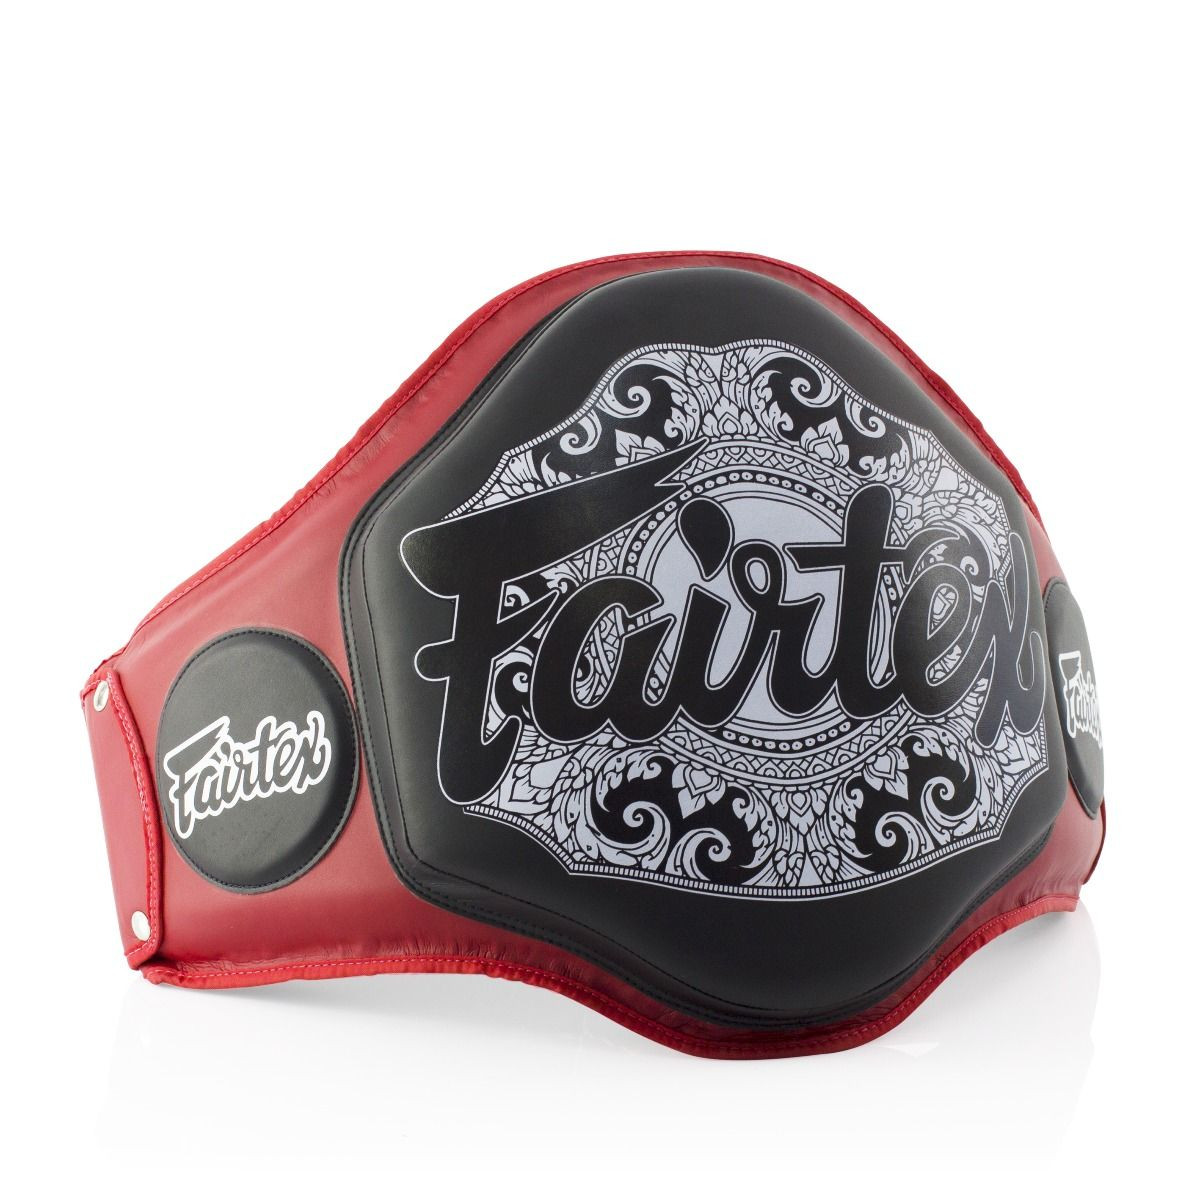 Fairtex Boxing Muay Thai Microfiber Belly Pad Red/Black